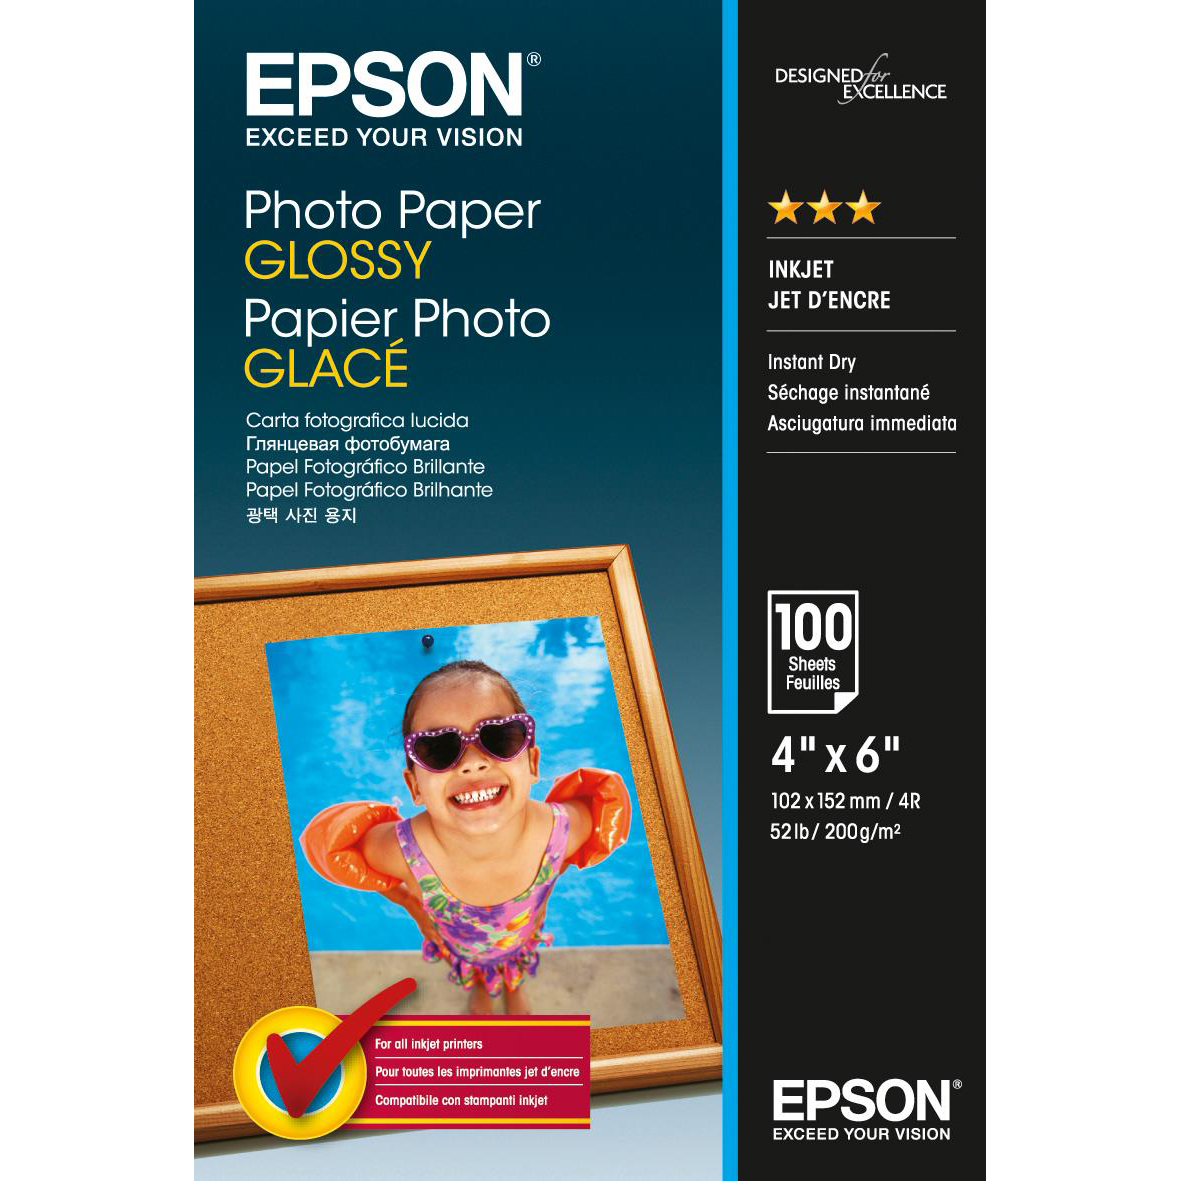 Epson Photo Paper Glossy 200gsm 100x150mm Ref C13S042548 100 Sheets *3to5 Day Leadtime*